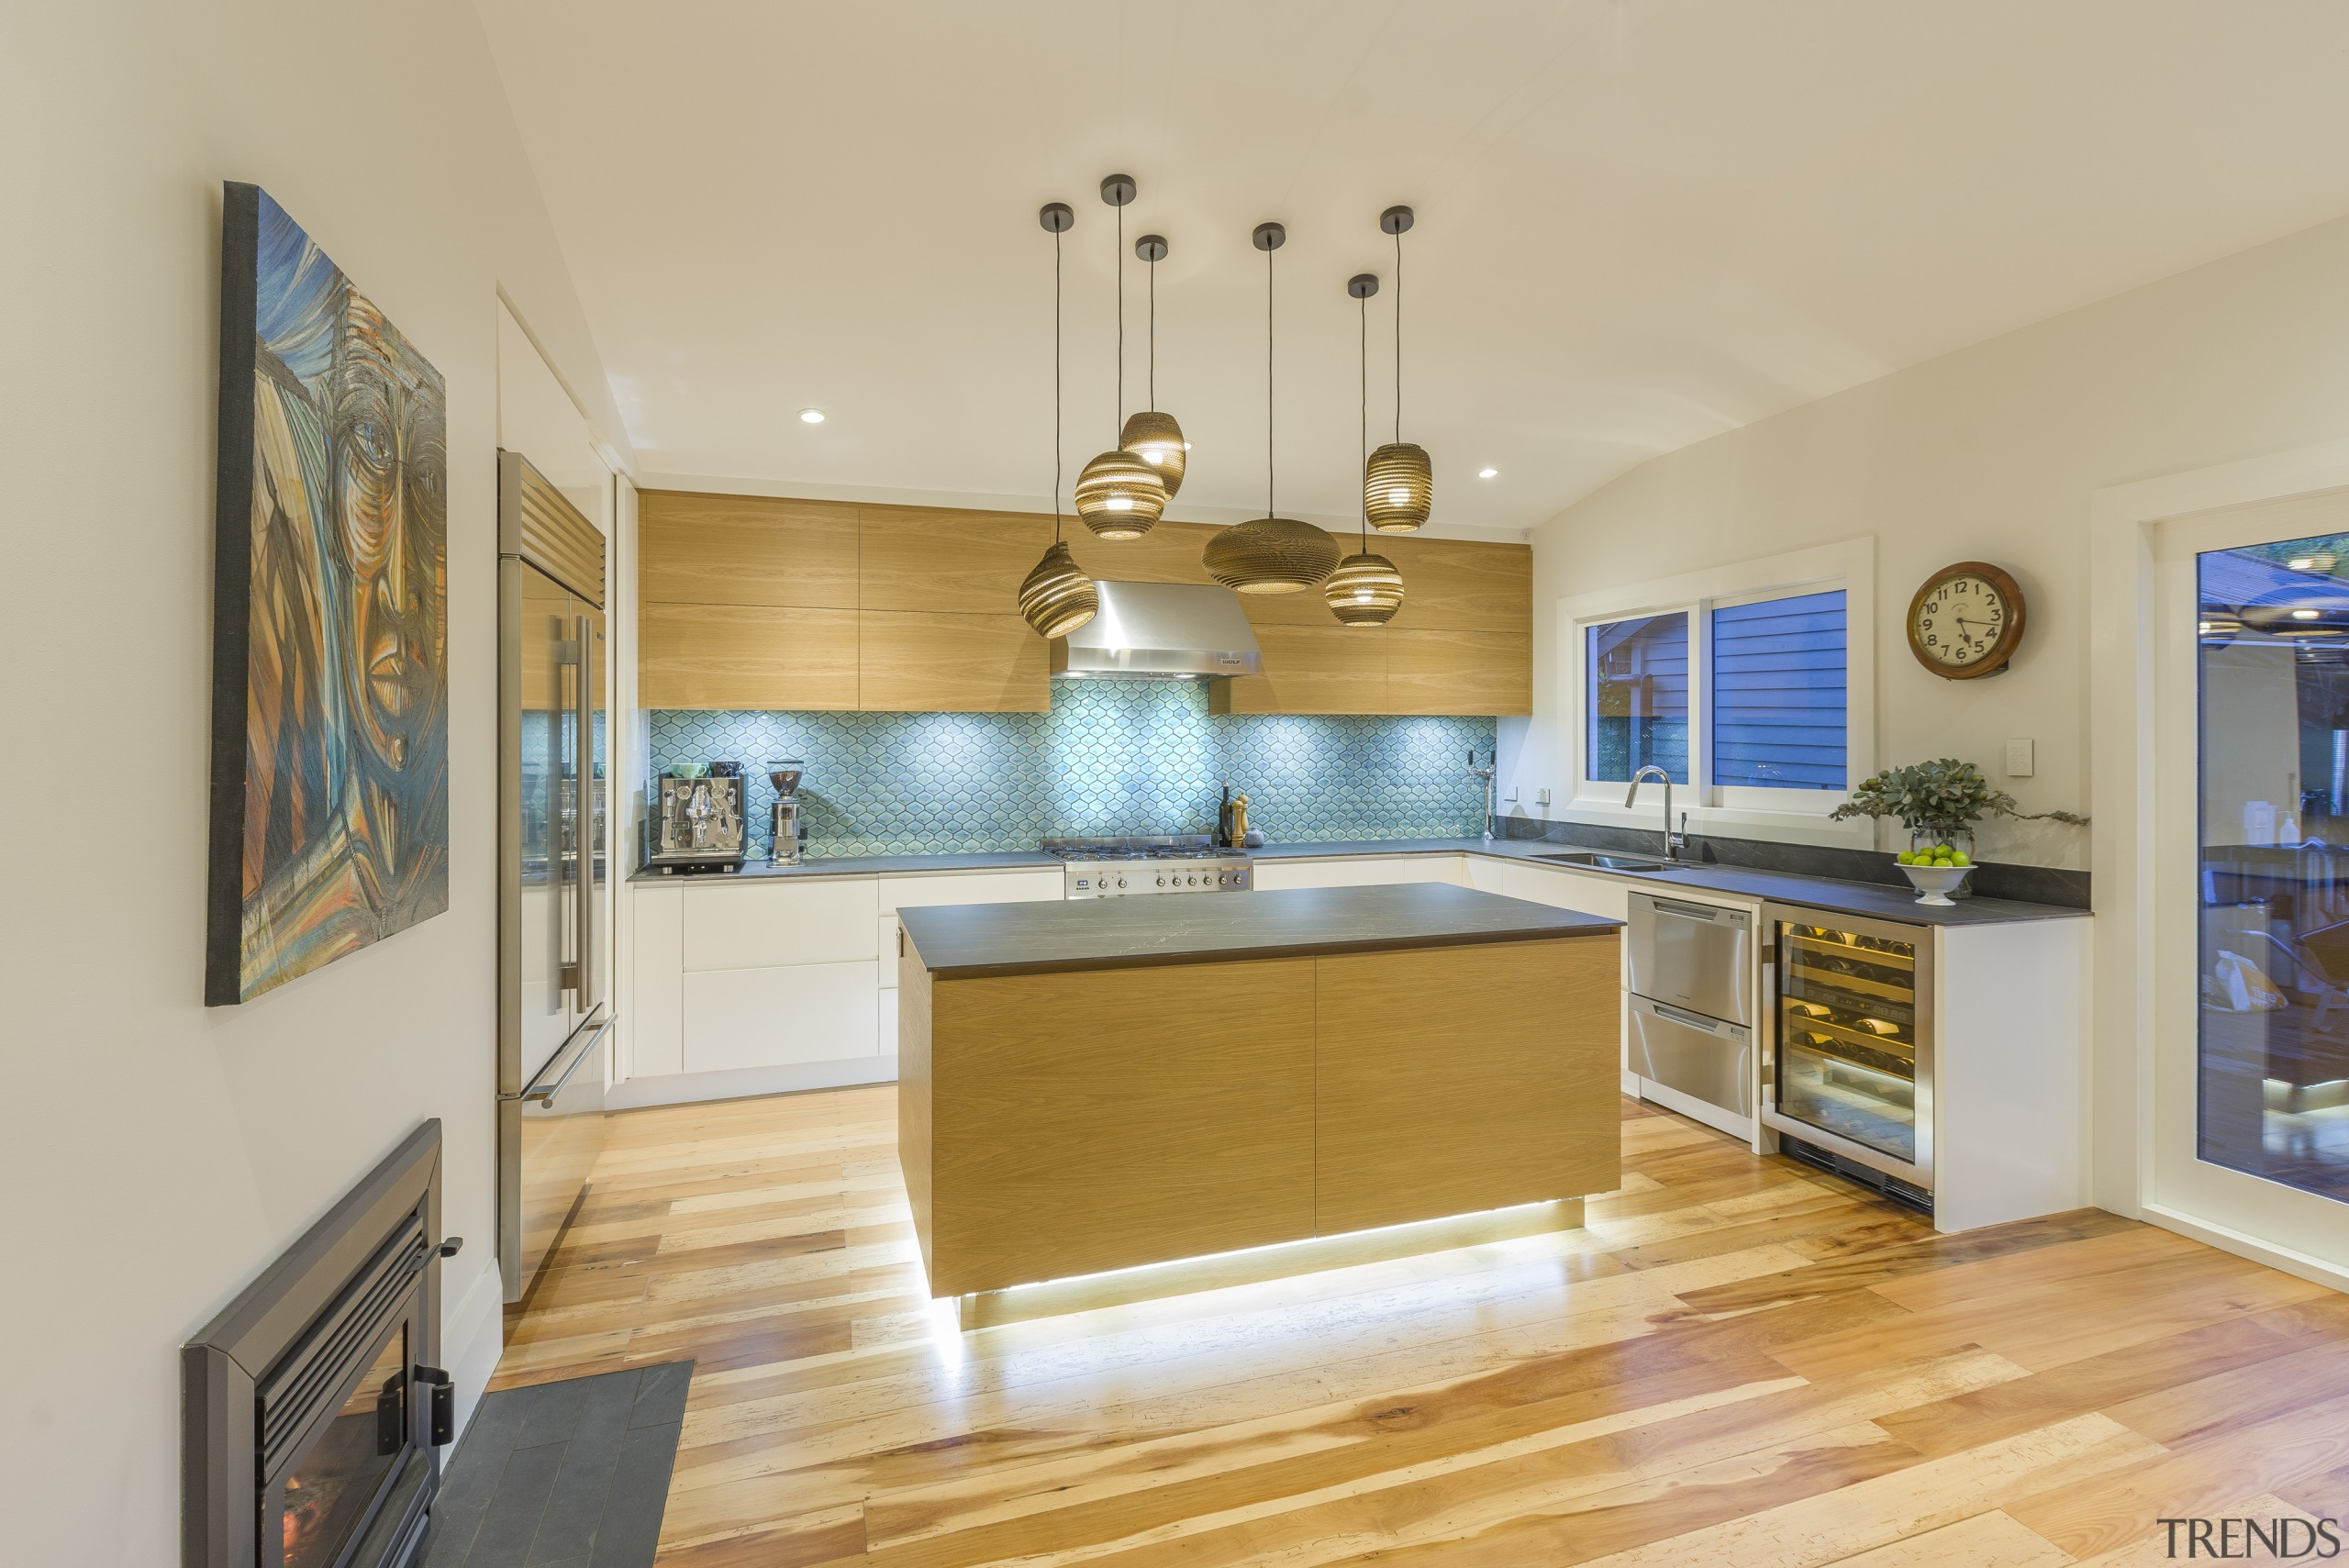 Designer Kira Gray brings a wow factor and architecture, building, cabinetry, ceiling, countertop, daylighting, estate, floor, flooring, furniture, hardwood, home, house, interior design, kitchen, laminate flooring, property, real estate, room, wood, wood flooring, yellow, orange